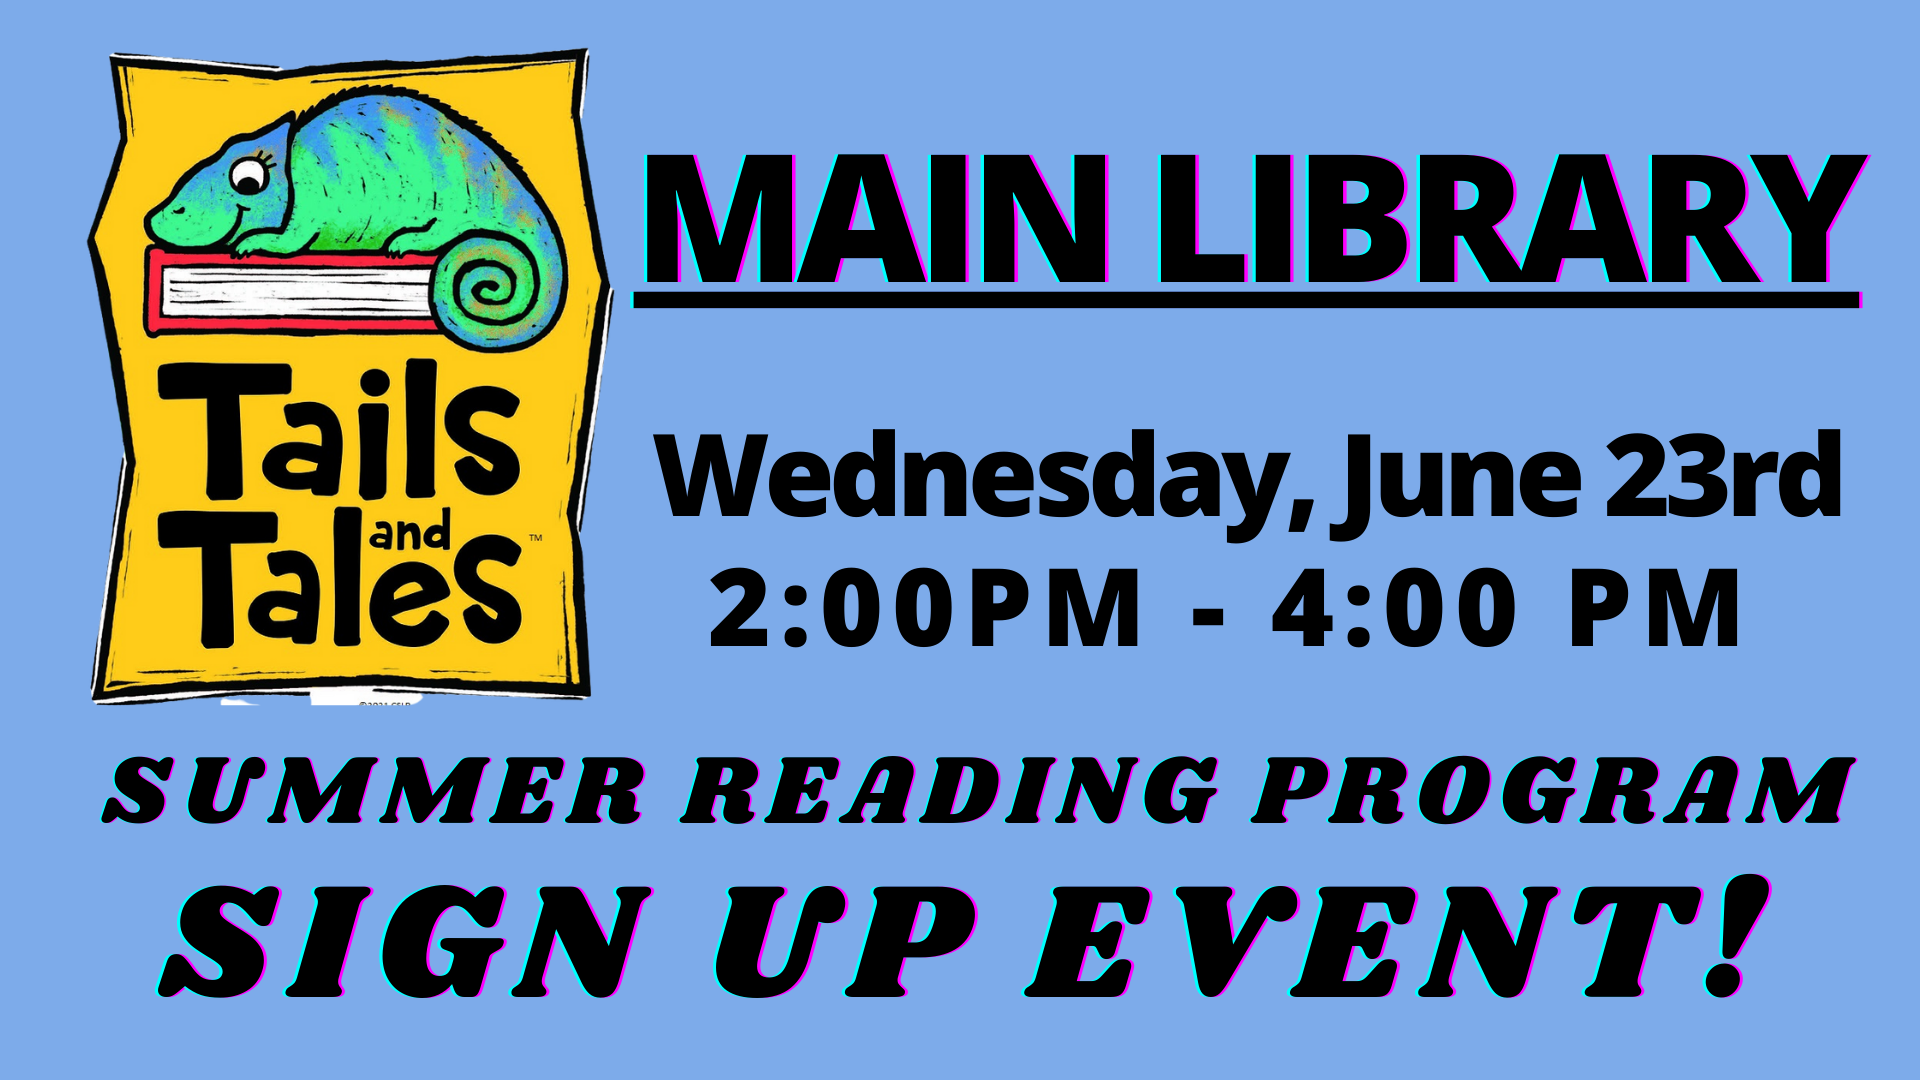 summer reading program sign up event - main library